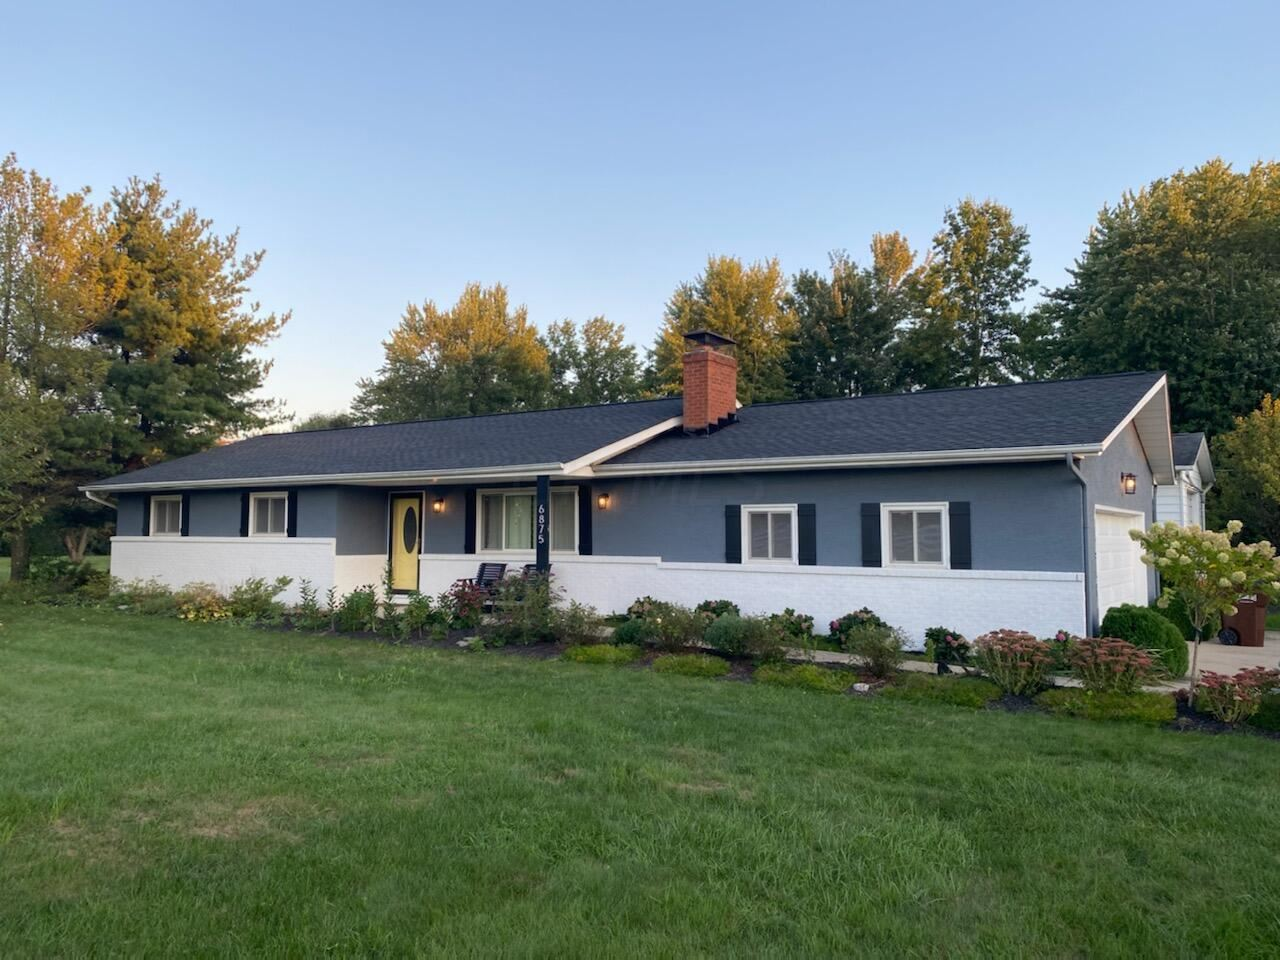 Photo of 6875 Central College Road, New Albany, OH 43054 (MLS # 221028978)